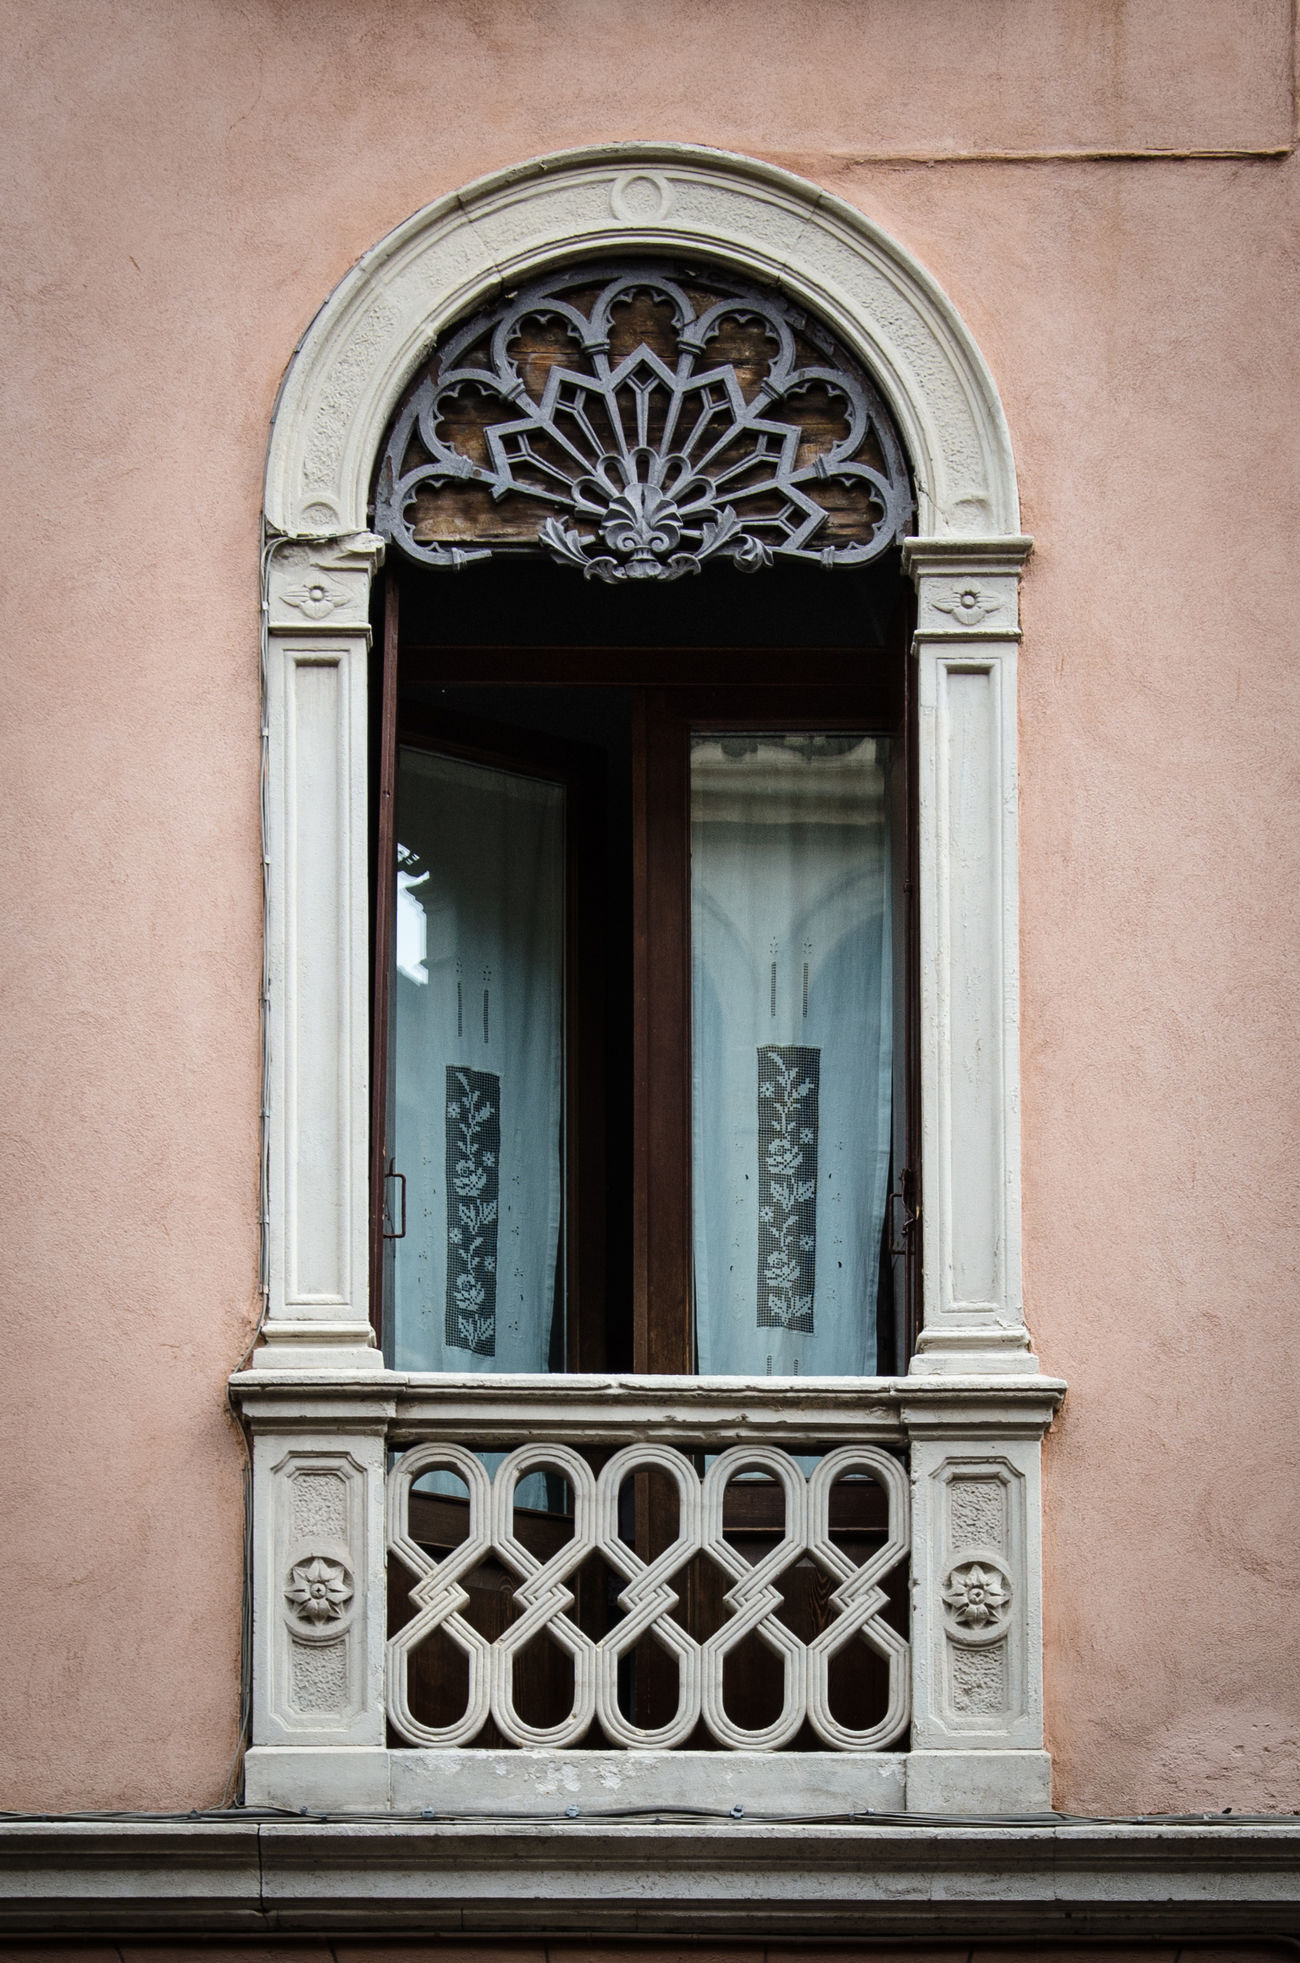 Beautiful Italian windows Arched Windows Architectural Detail Architecture Aristocratic Aristocratic Mansion Beautiful Italian Windows Beautiful Italy Historic Building Historic Center Historic Centre Historic Cities Italian Renaissance Masonry Old Buildings Old Windows Old Wooden Window Padua Palazzi Storici Traditional Italian Architecture Veneto Italy Venice Via Roma Weathered Window Window View